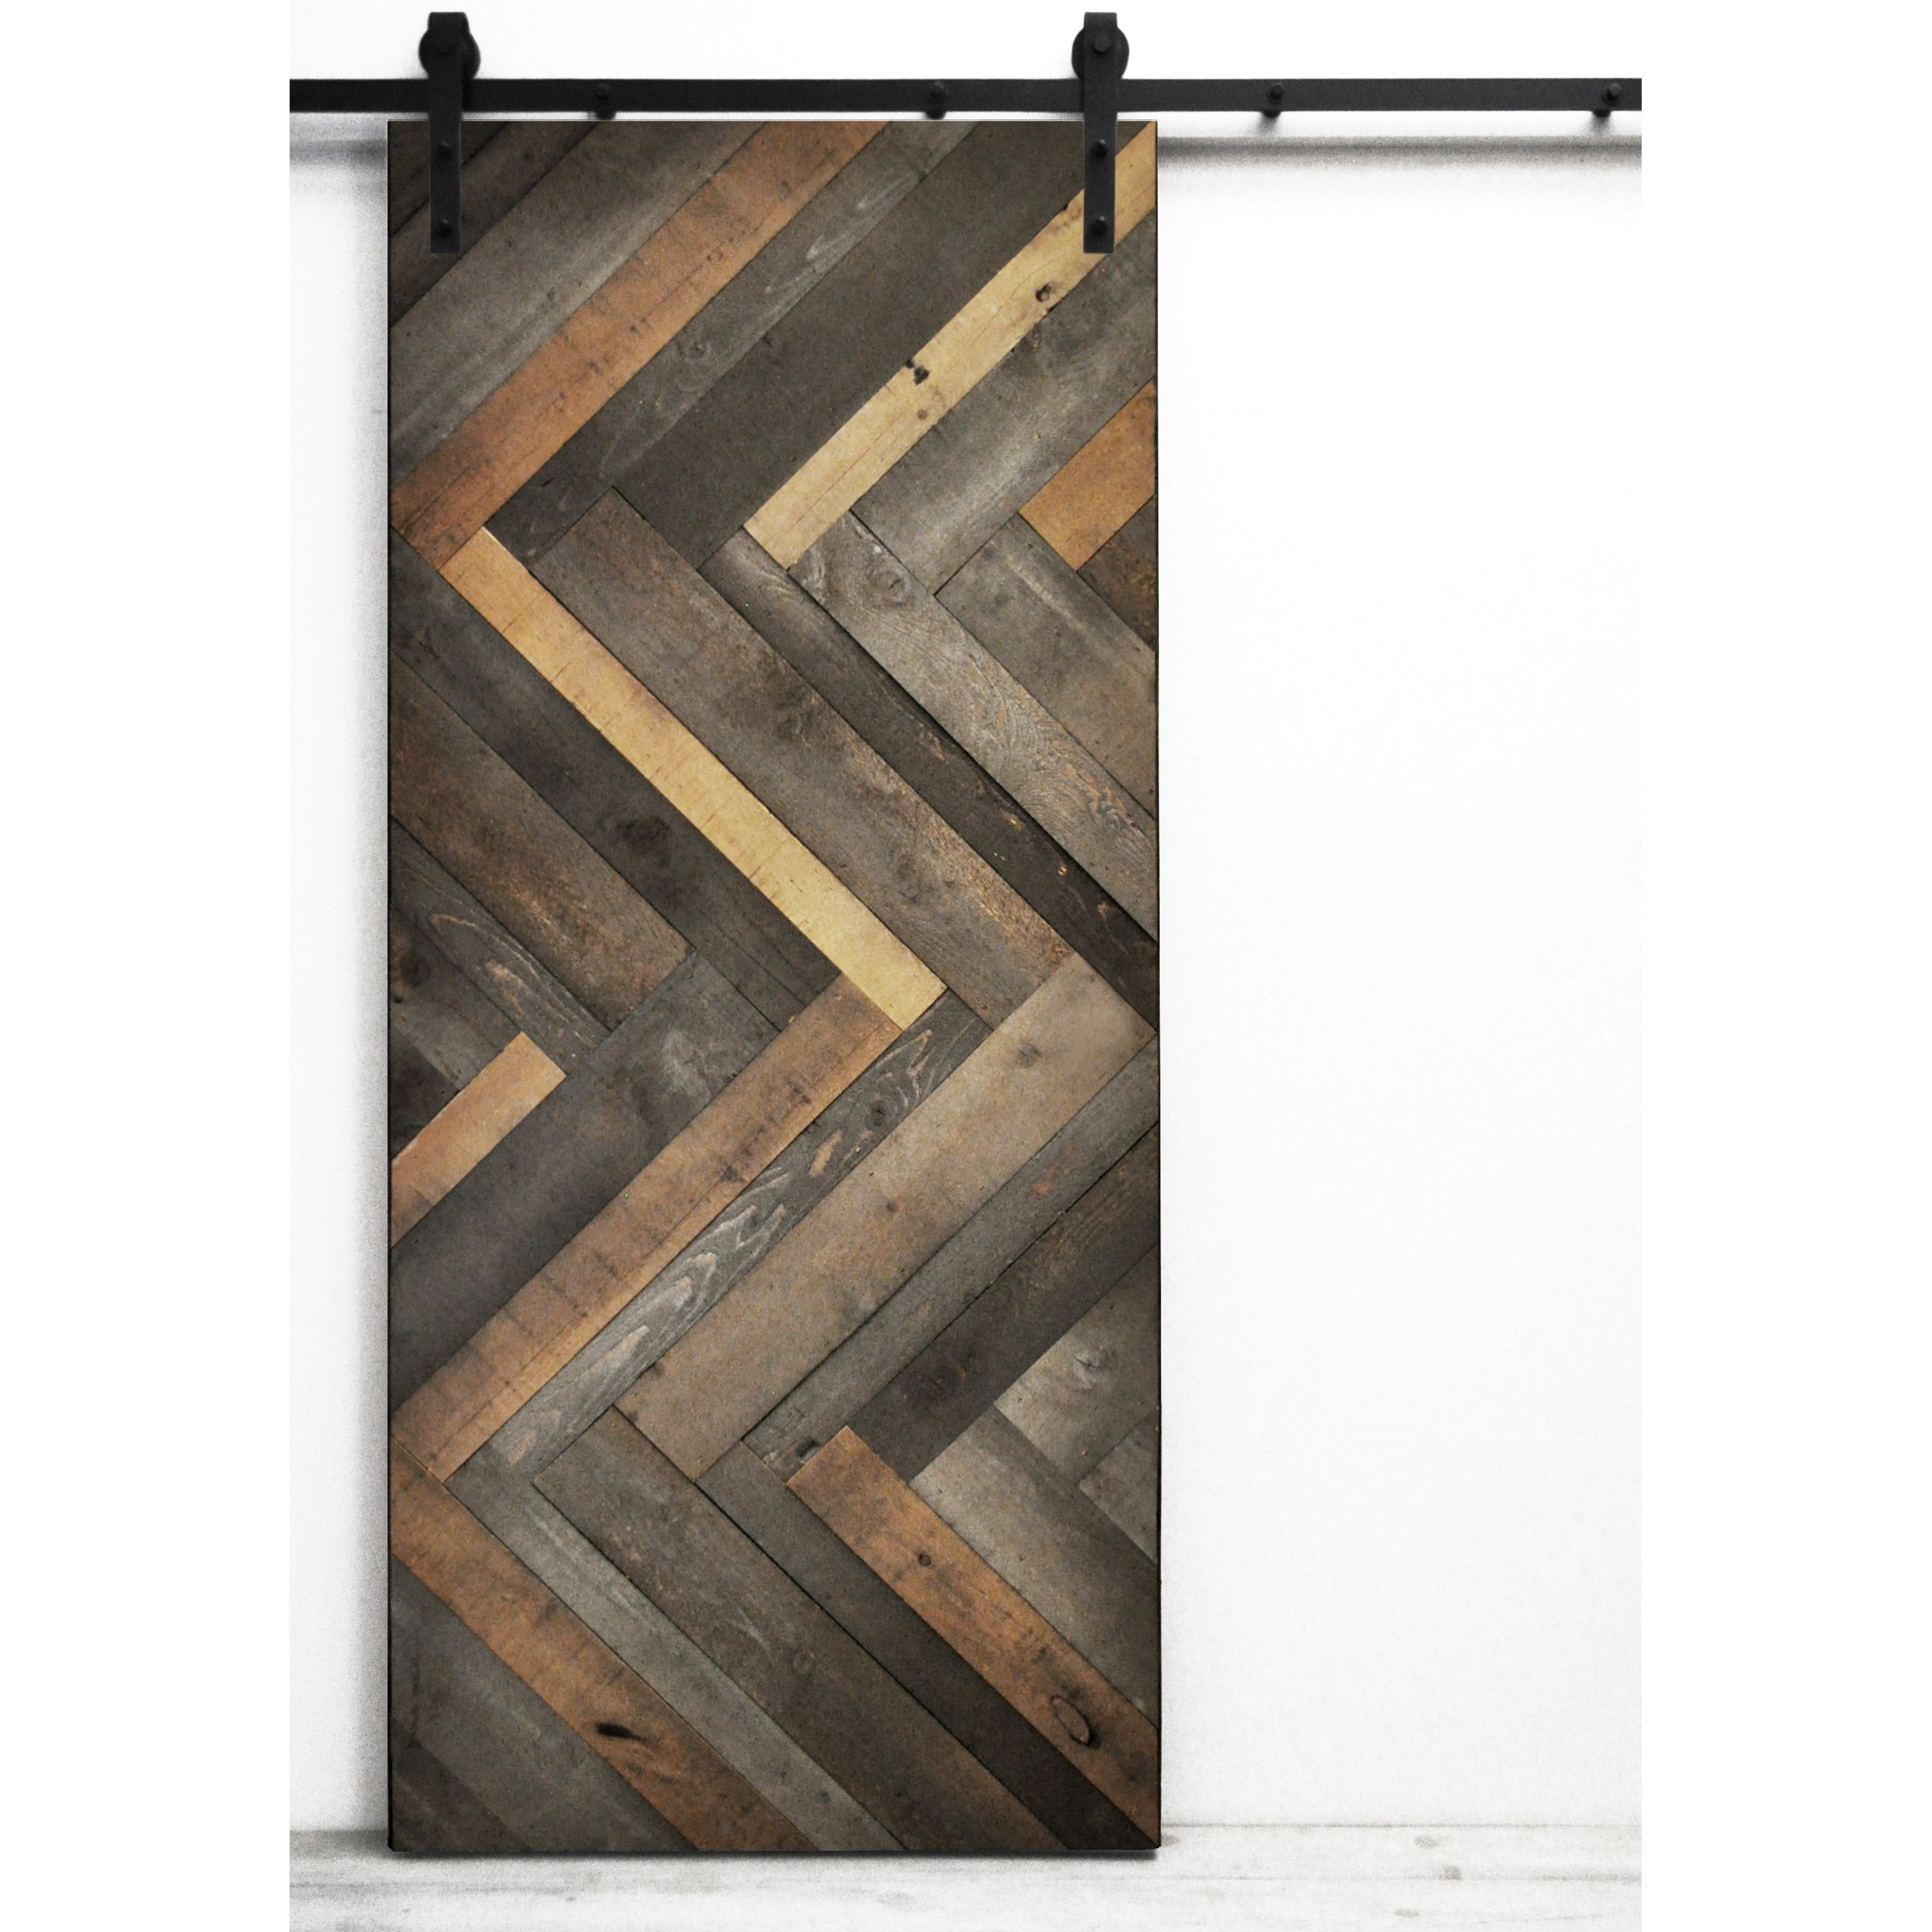 Dogberry Collections Herringbone Wood Lacquer Stained Interior Barn Door